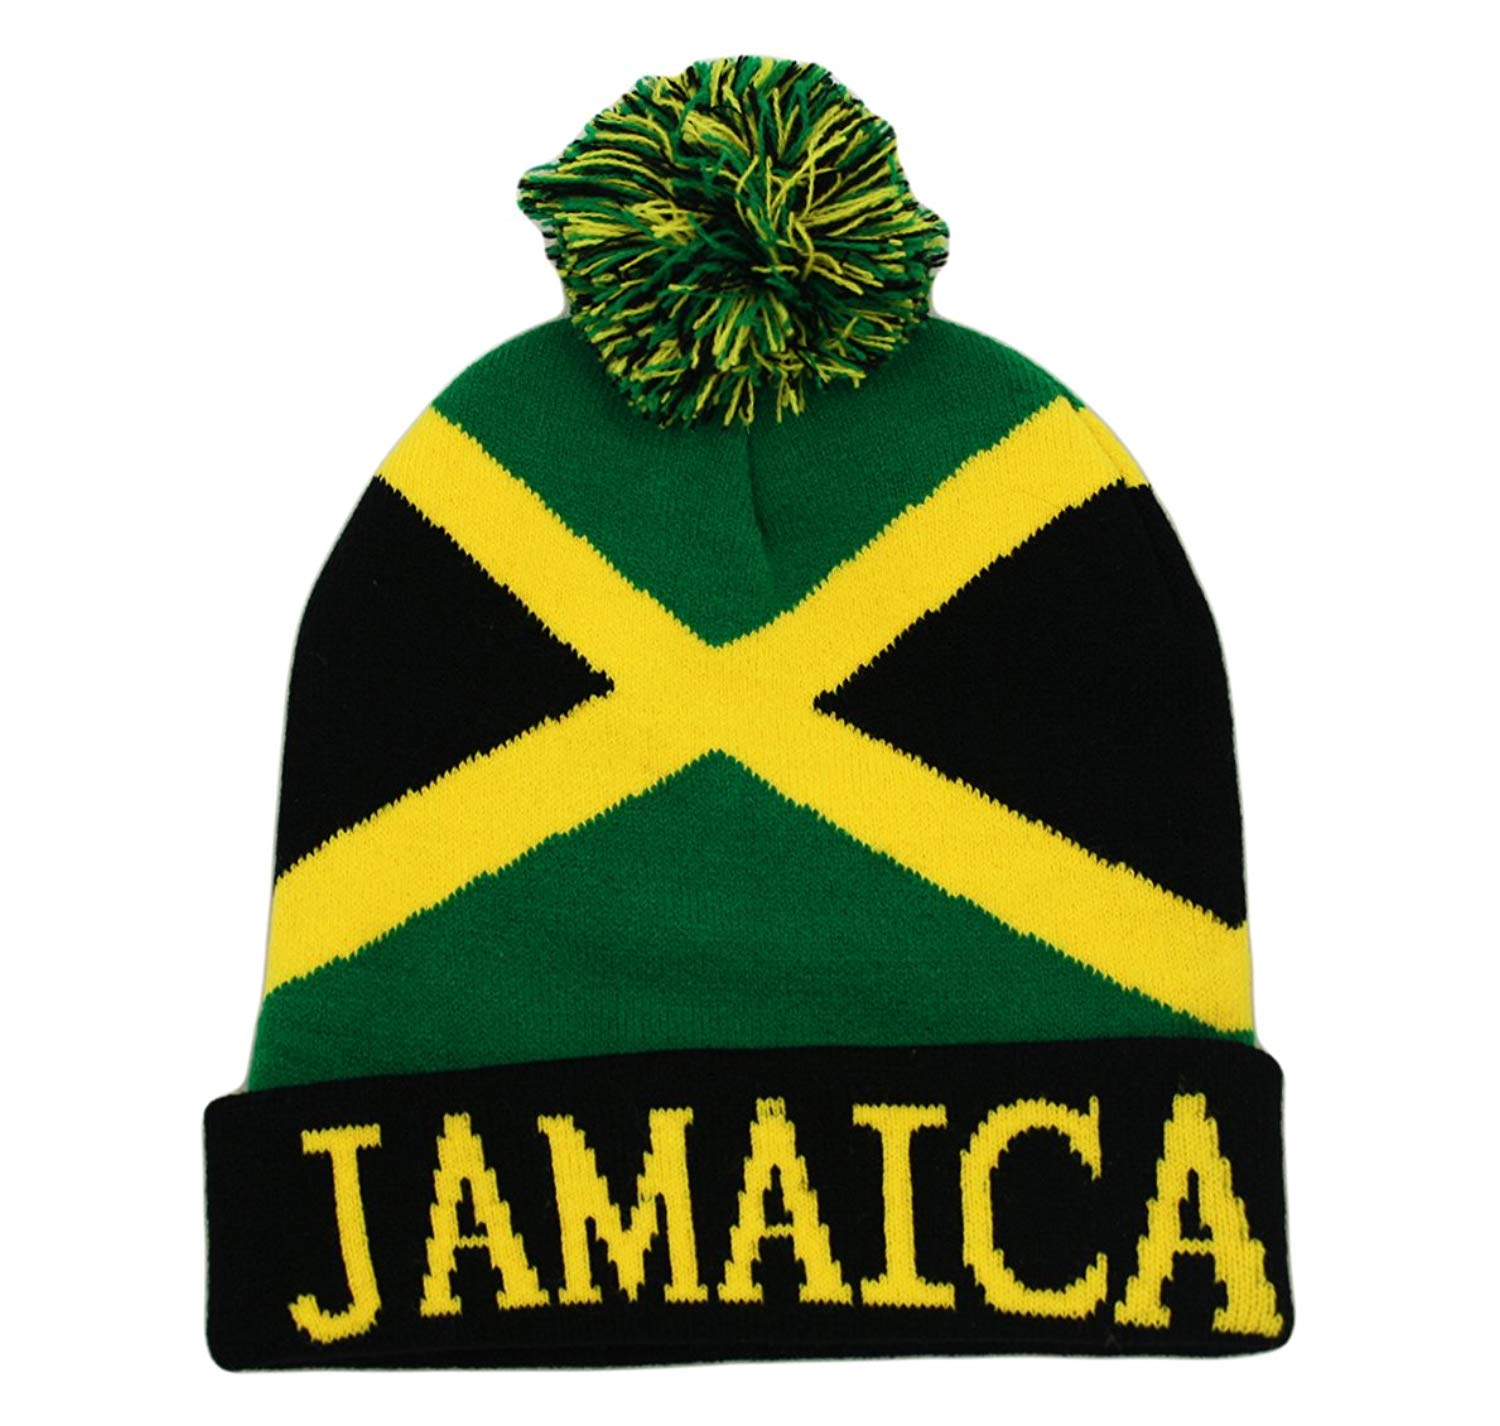 11dca033fdc Get Quotations · Itzu Bobble Beanie Knit Winter Hat Jamaica Rasta in Black  Yellow and Green